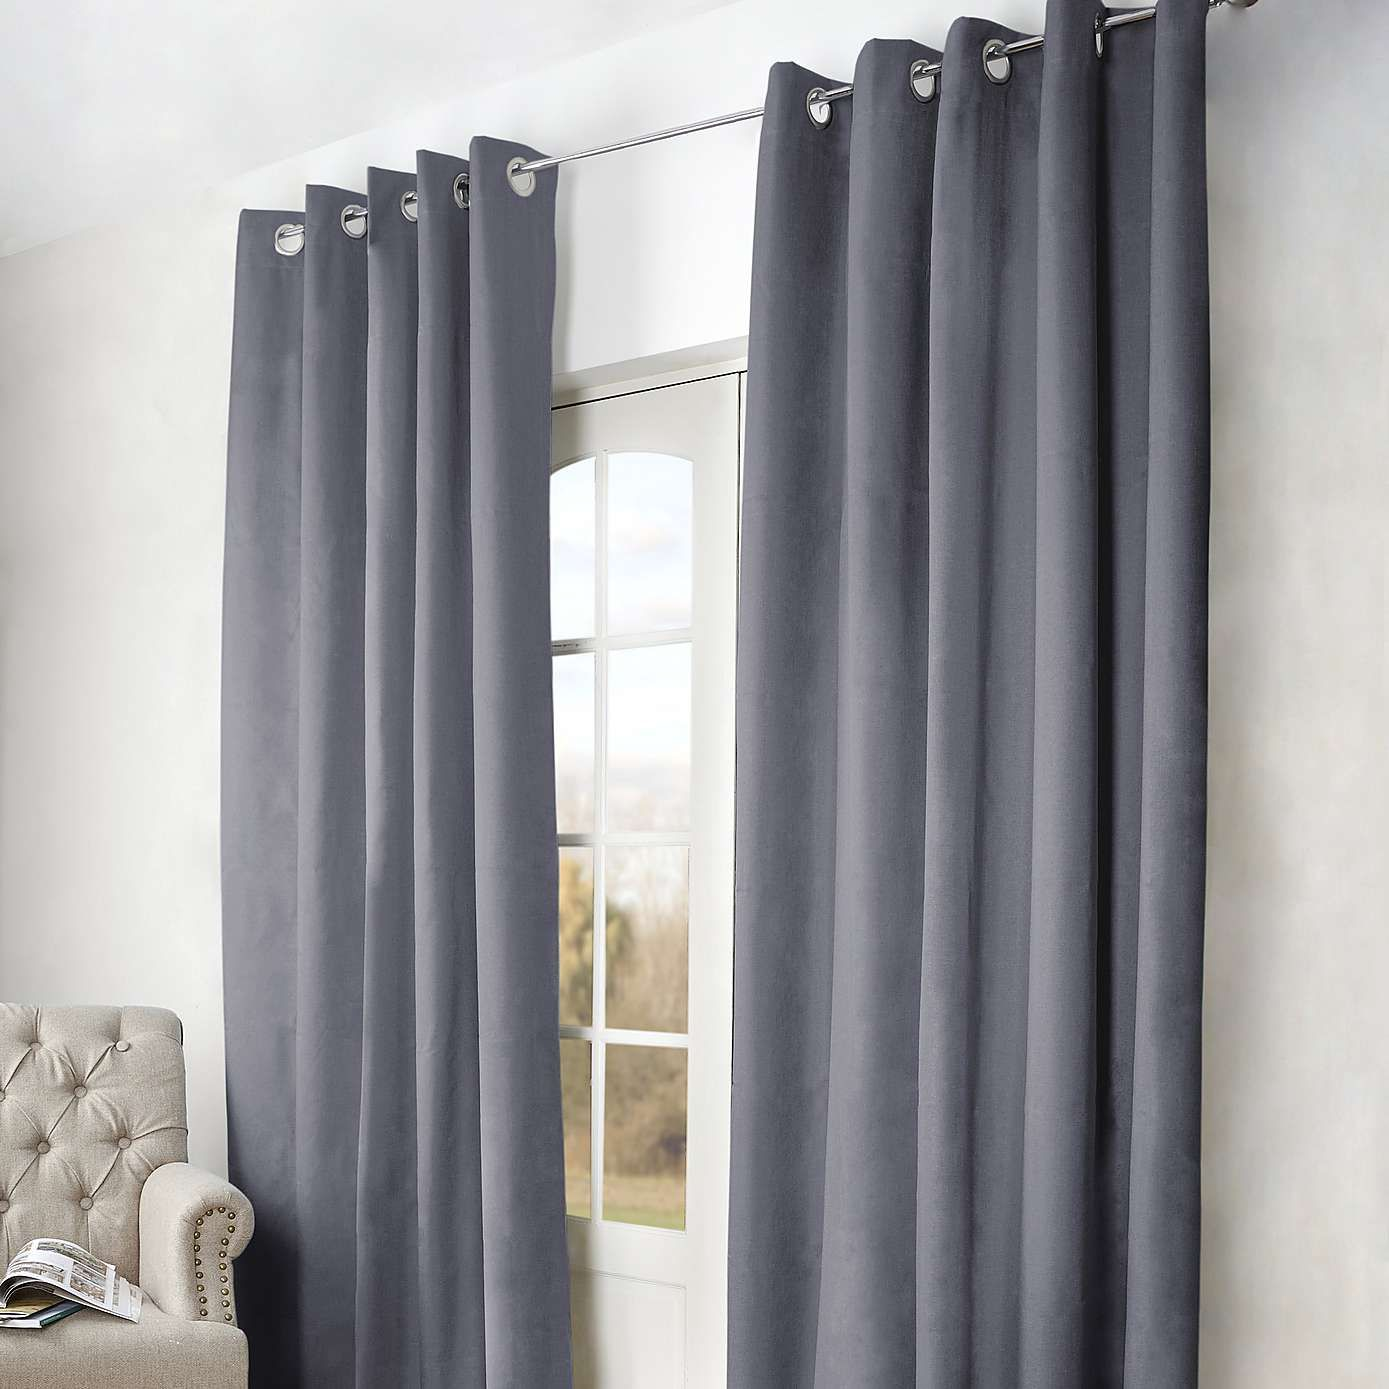 Grey Thermal Curtains Arizona Grey Thermal Blackout Eyelet Curtains Dunelm My New